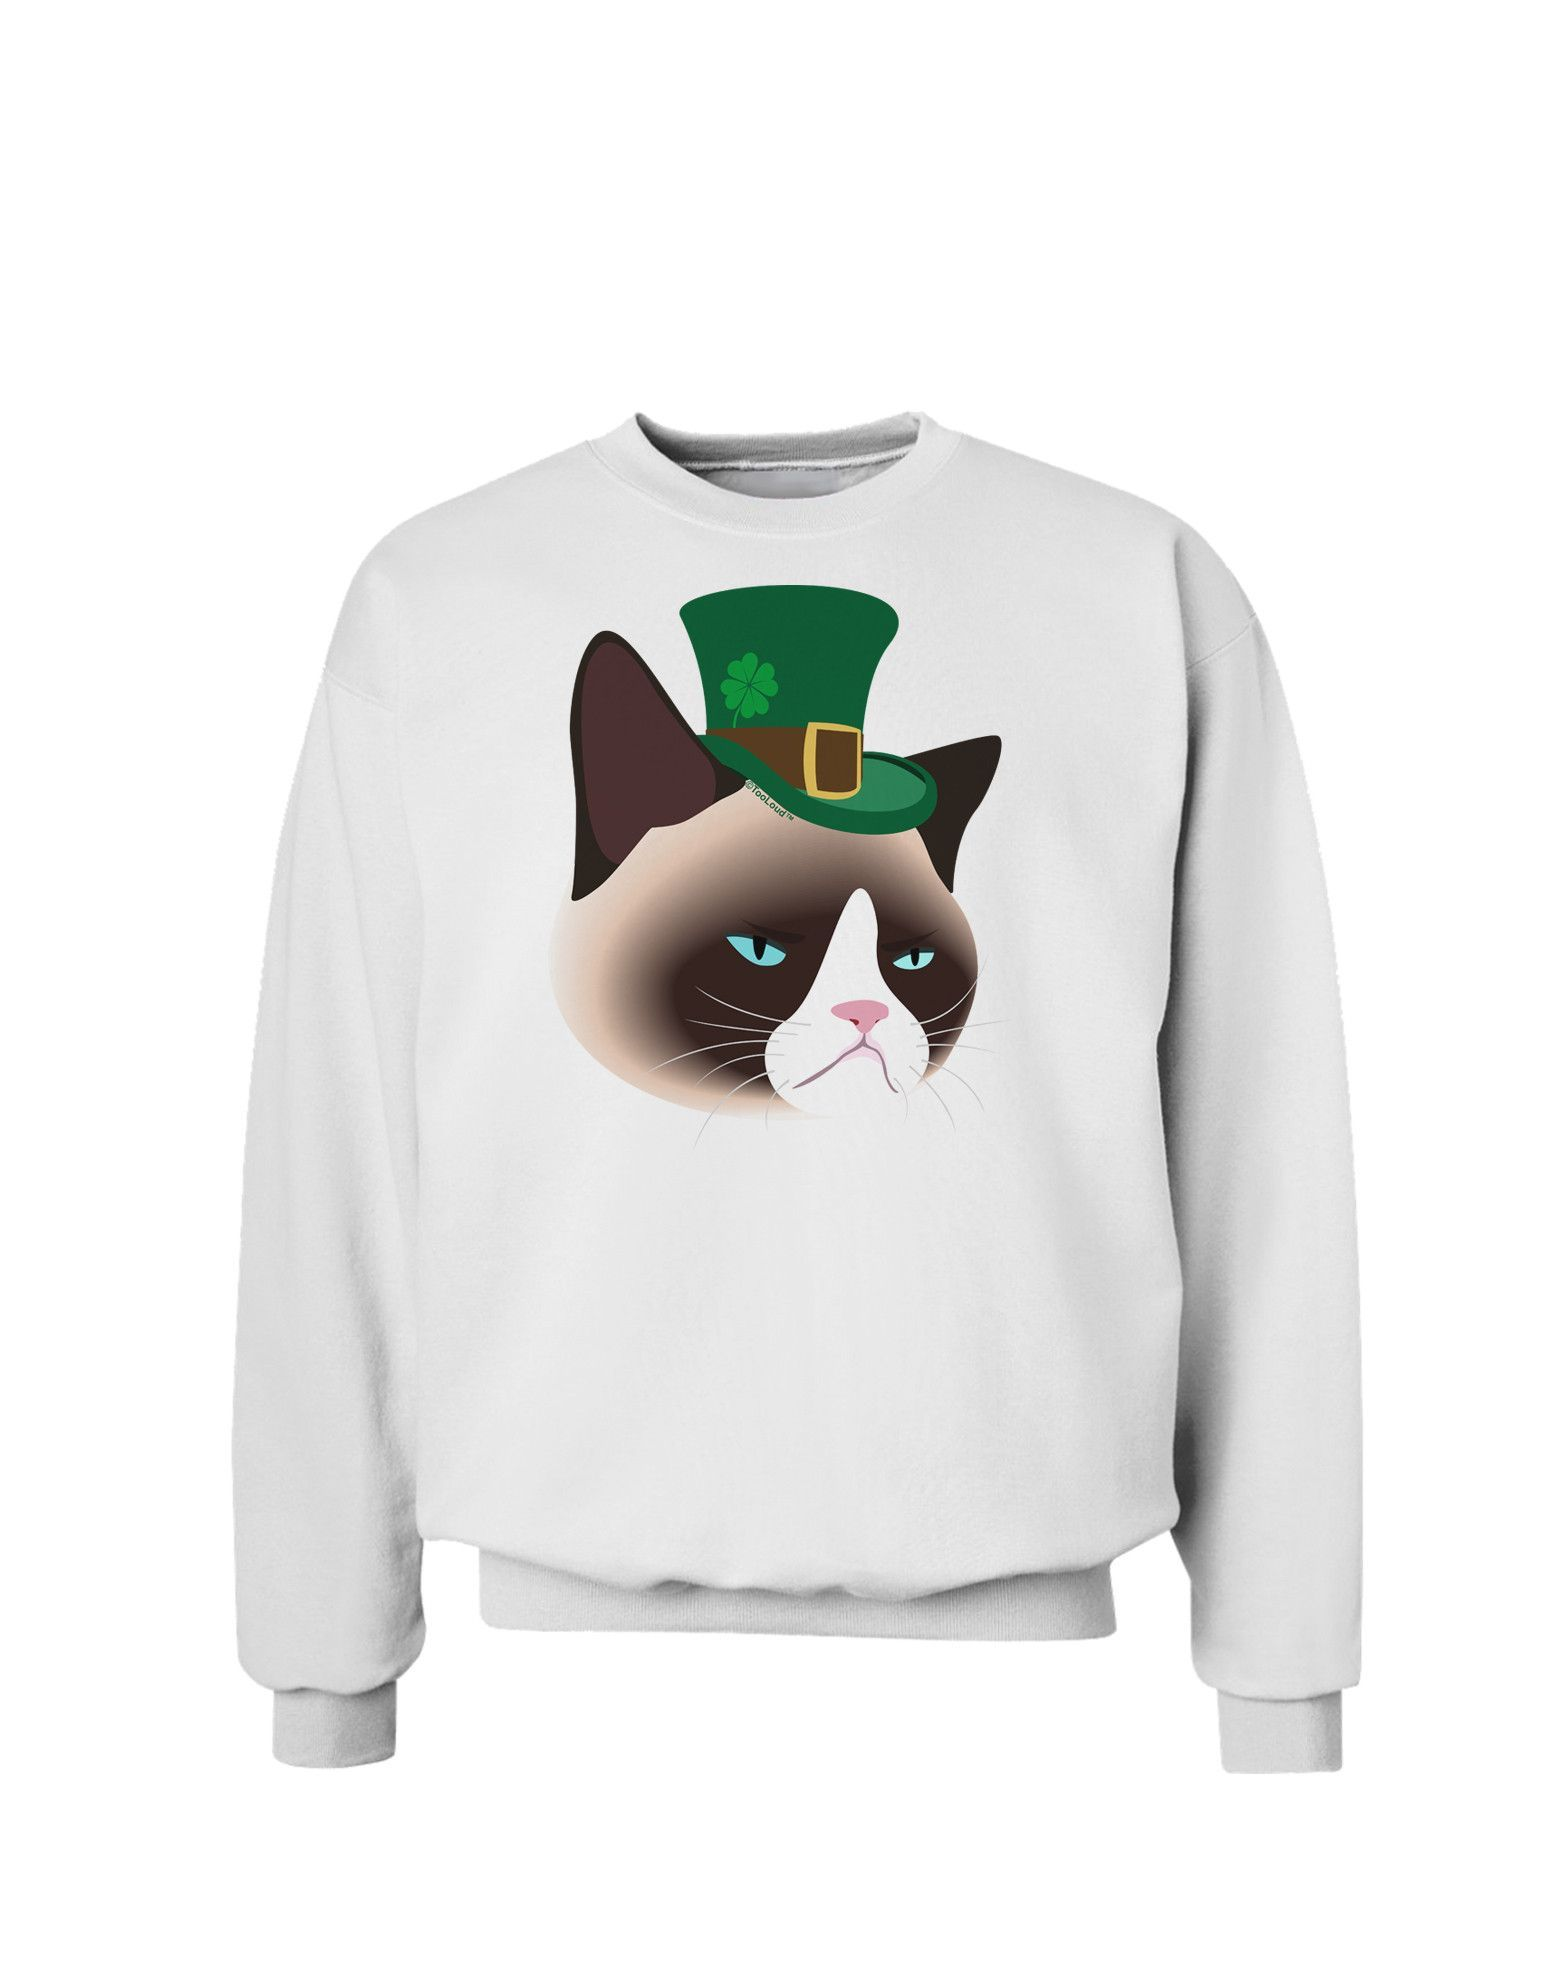 TooLoud Leprechaun Disgruntled Cat Sweatshirt